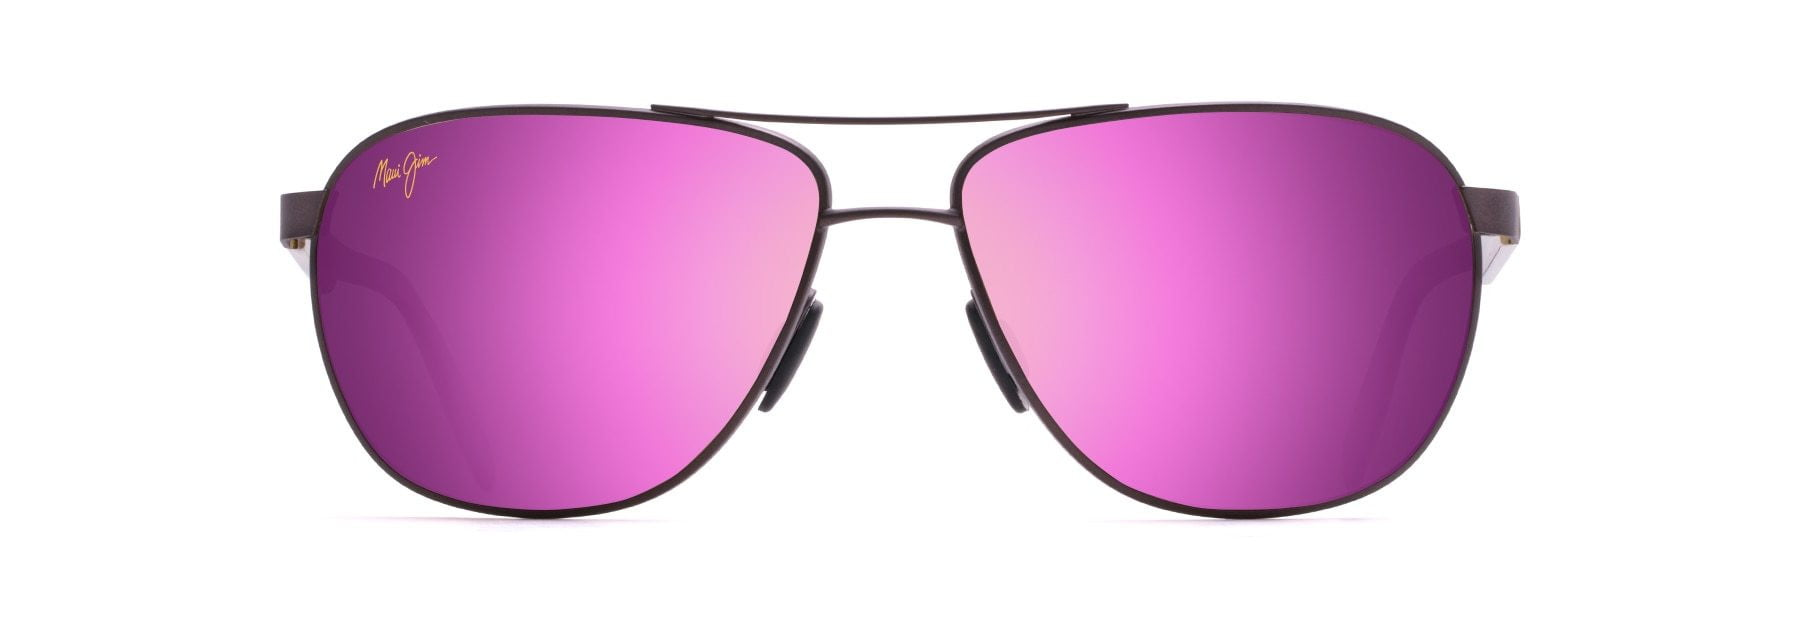 MyMaui Castles MM728-022 Sunglasses